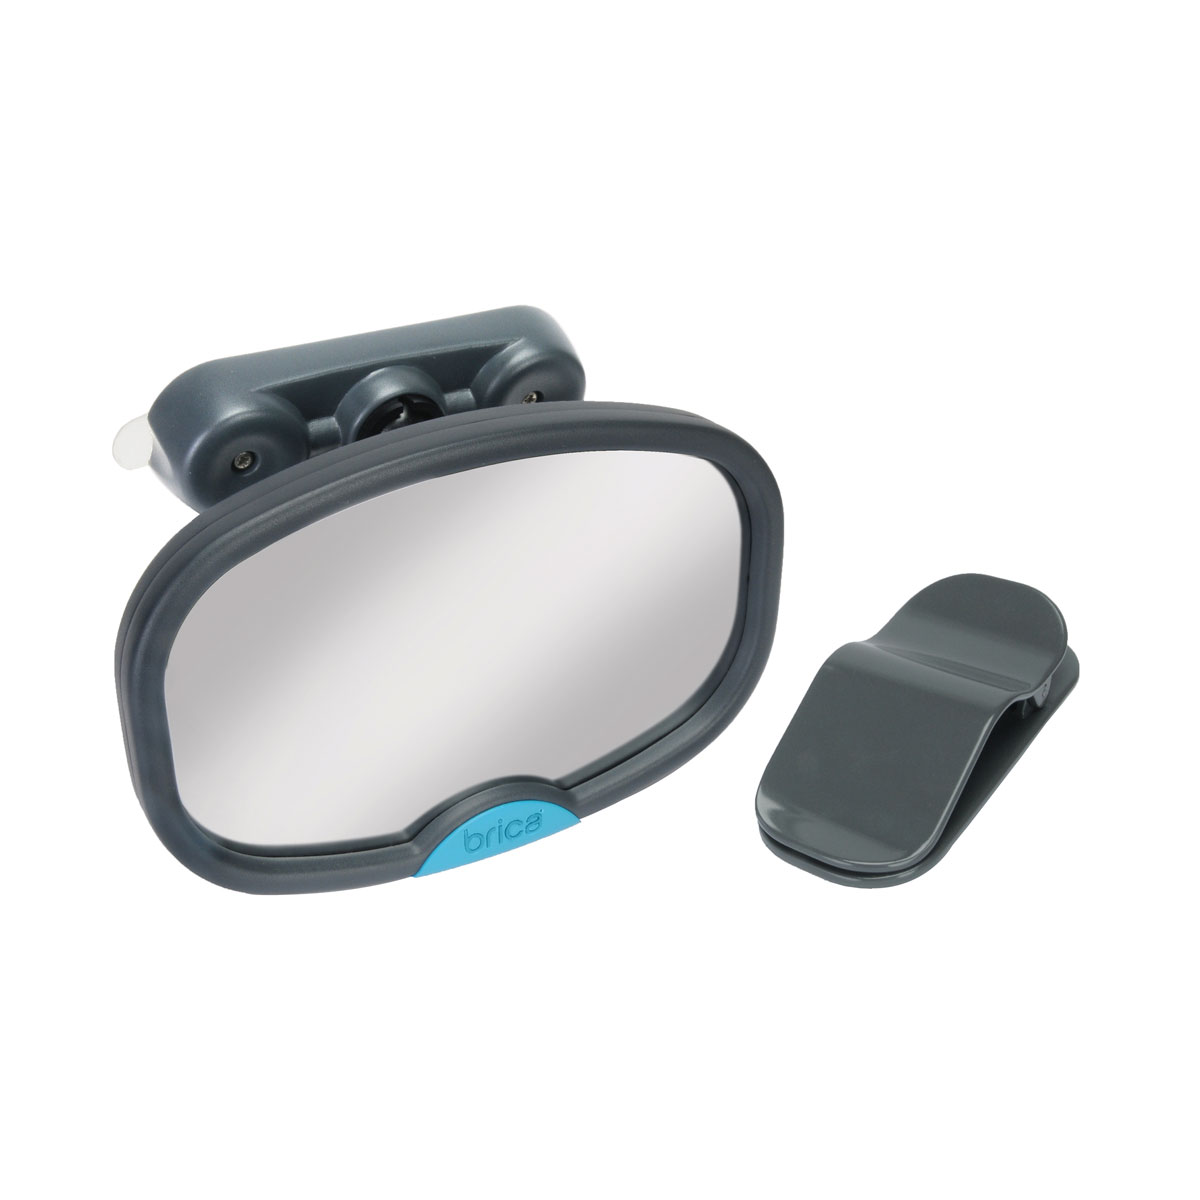 Miroir de voiture Clear-Sight